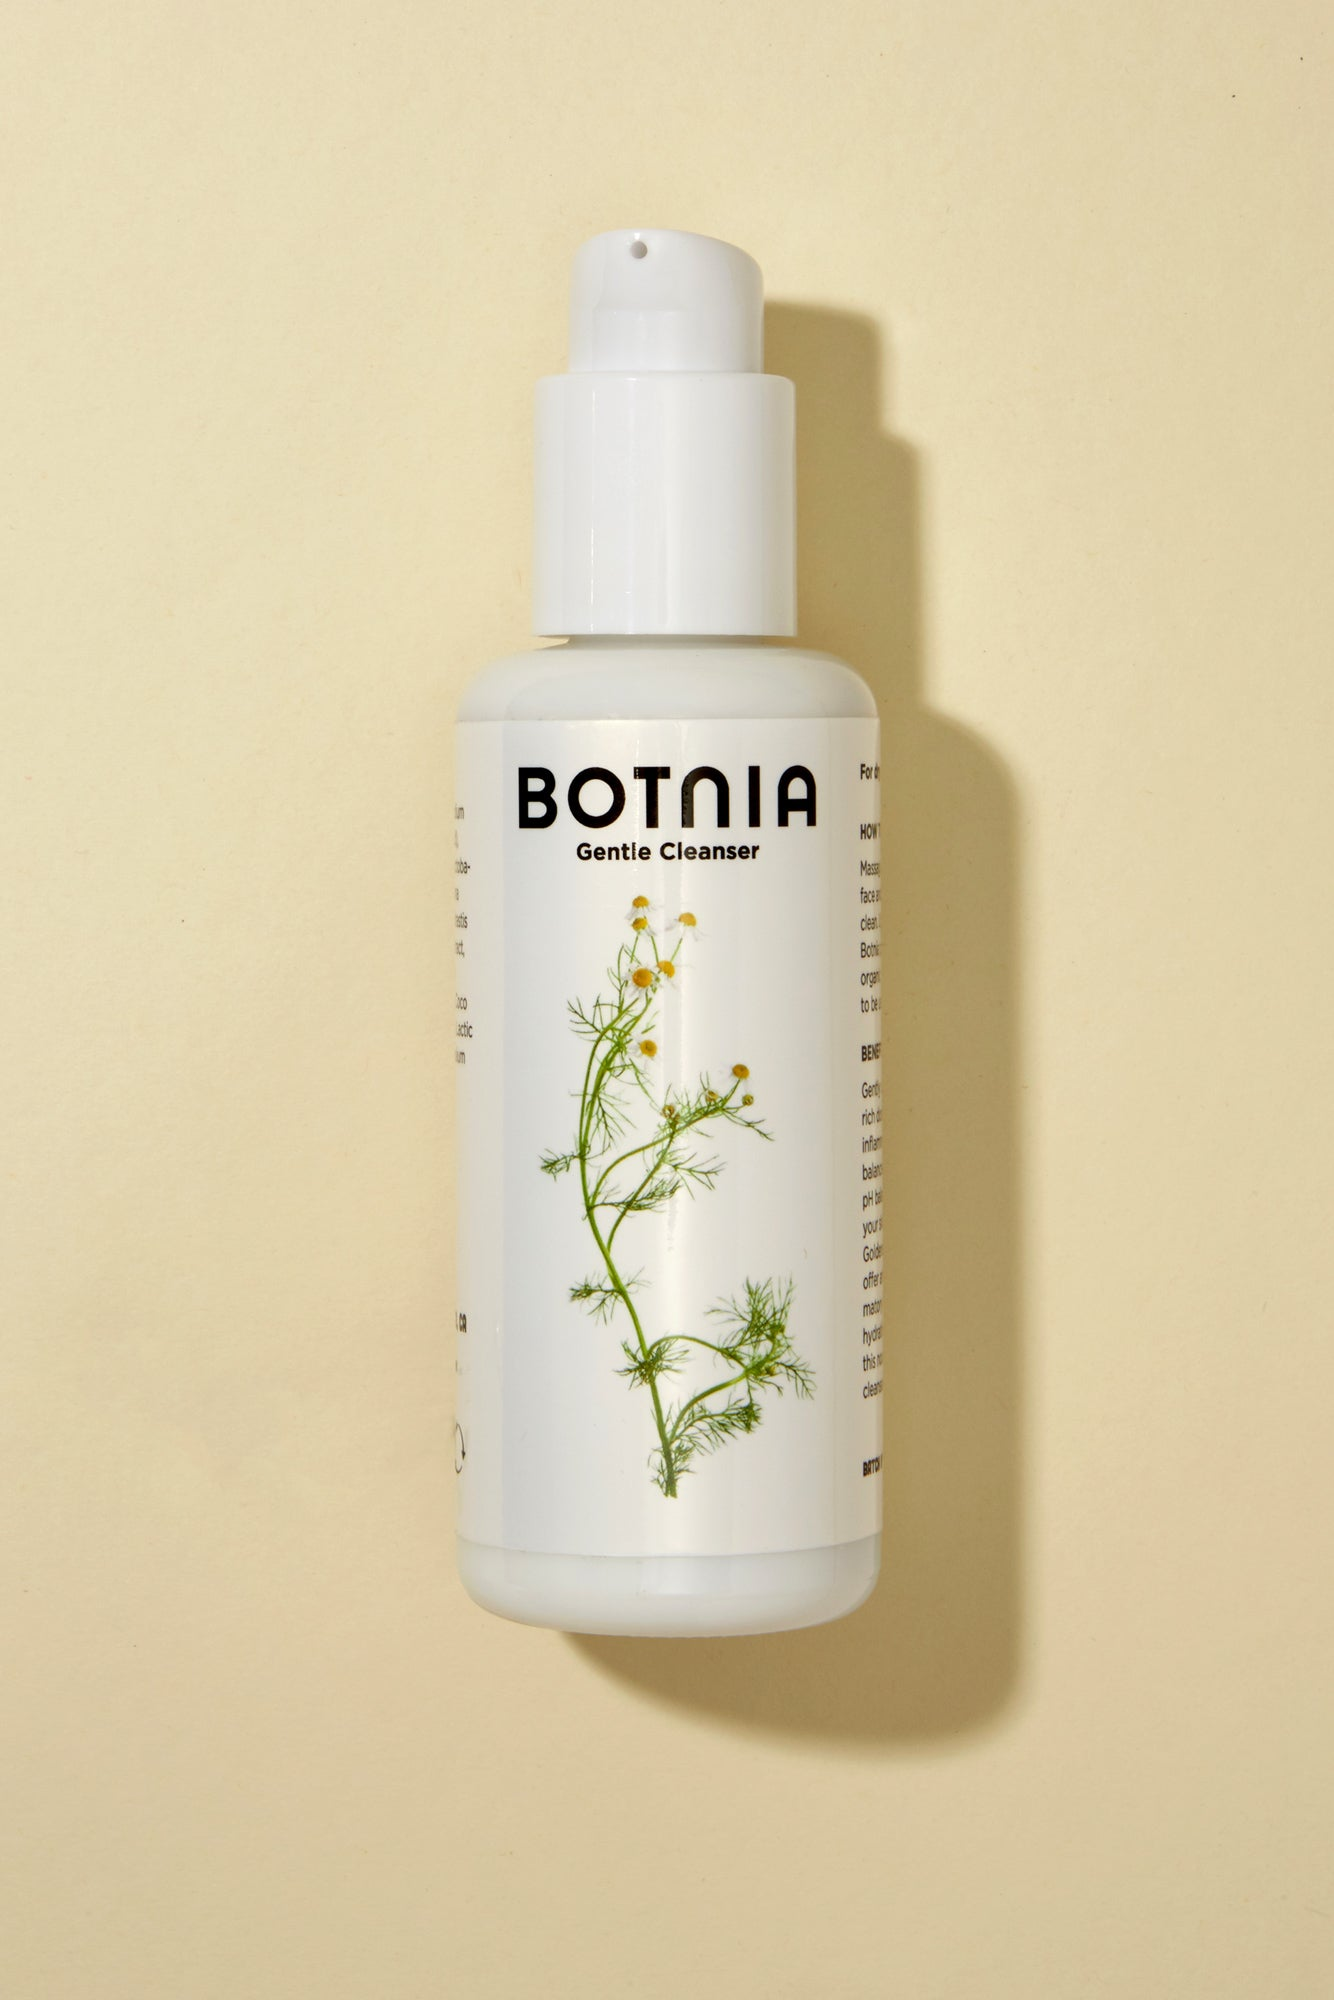 overhead picture of botnia gentle cleanser in new updated glass bottle. On a tan background. Bottle is white with a label and picture of a flower on the front.